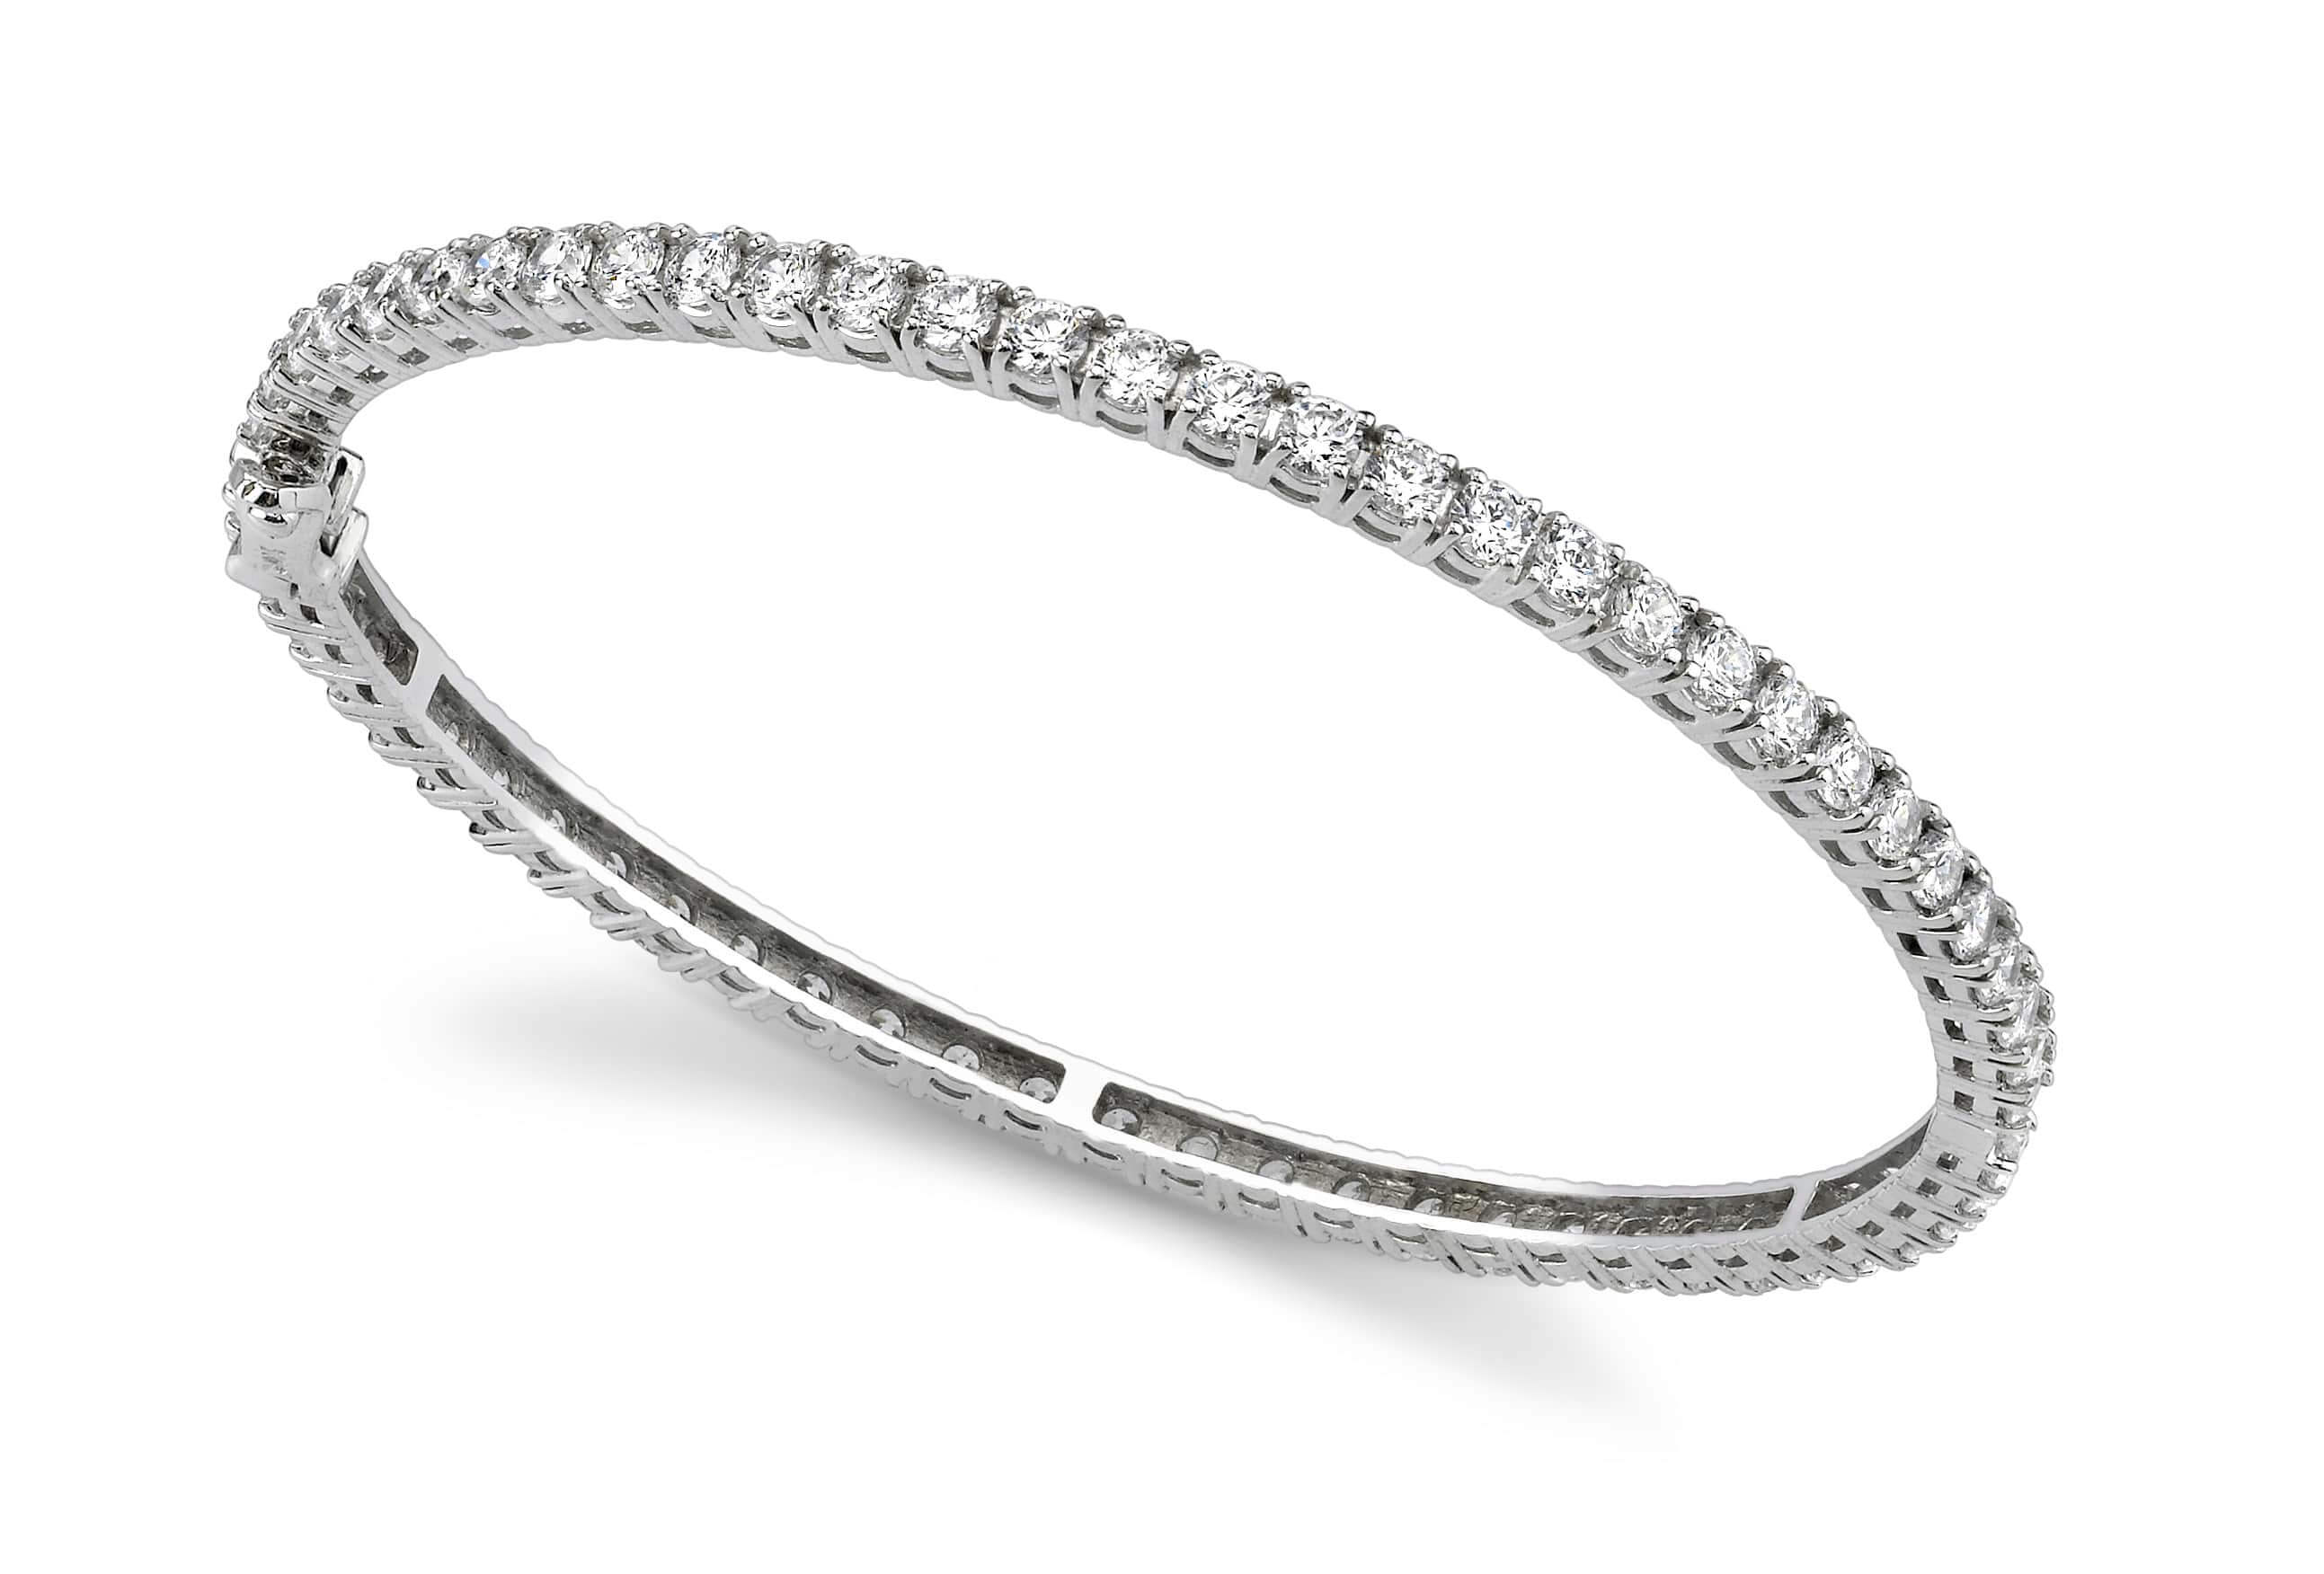 round id in diamond brilliant medium m ed jewelry diamonds bangle etoile gold c wid hei fmt fit constrain bracelets with